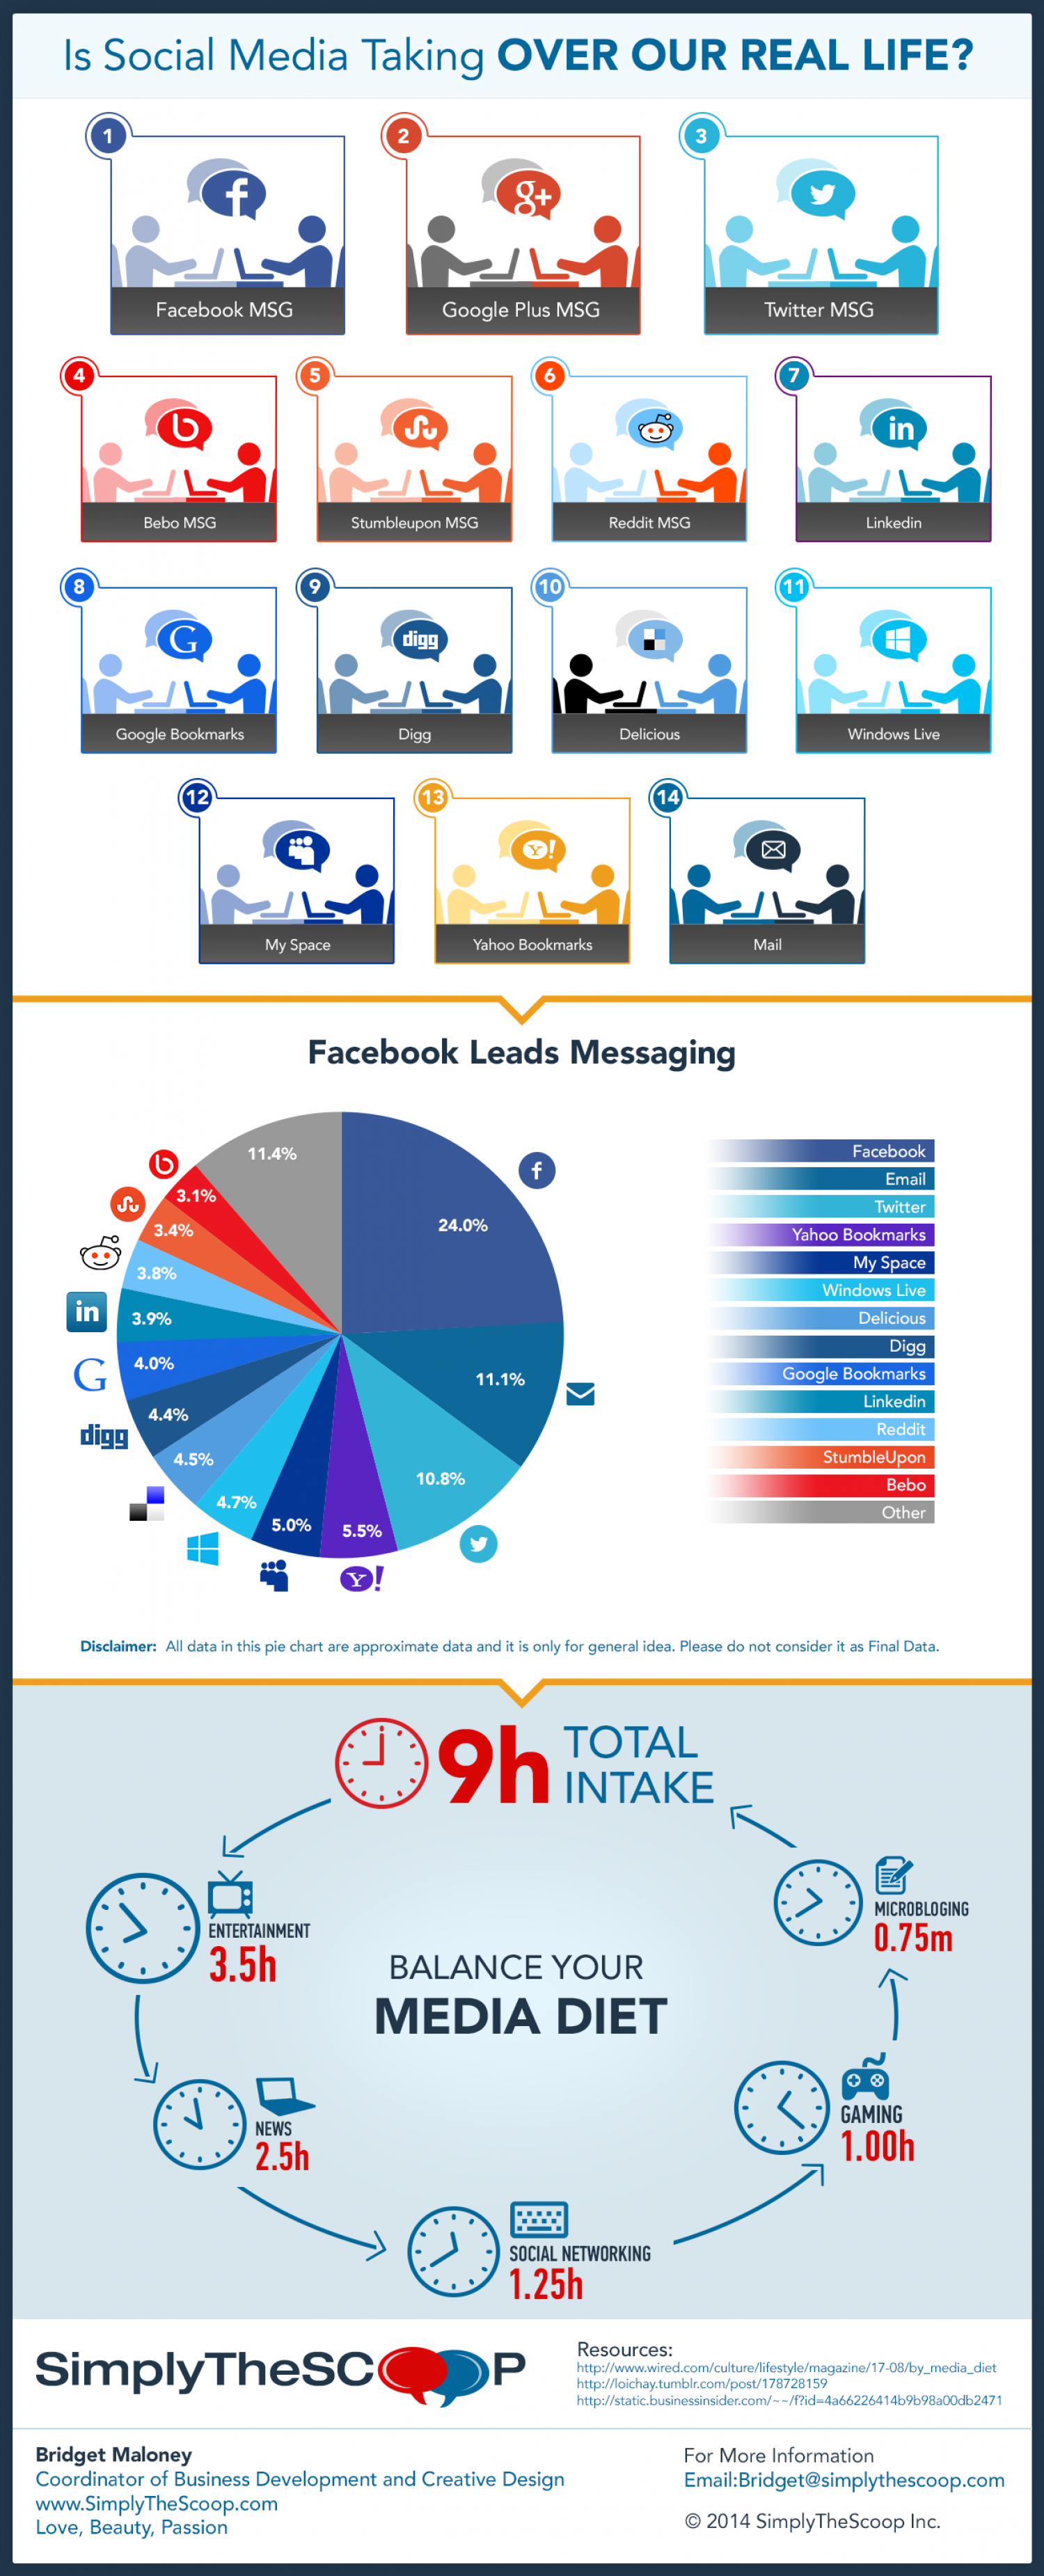 Is Social Media Taking Over our Social Life? Infographic